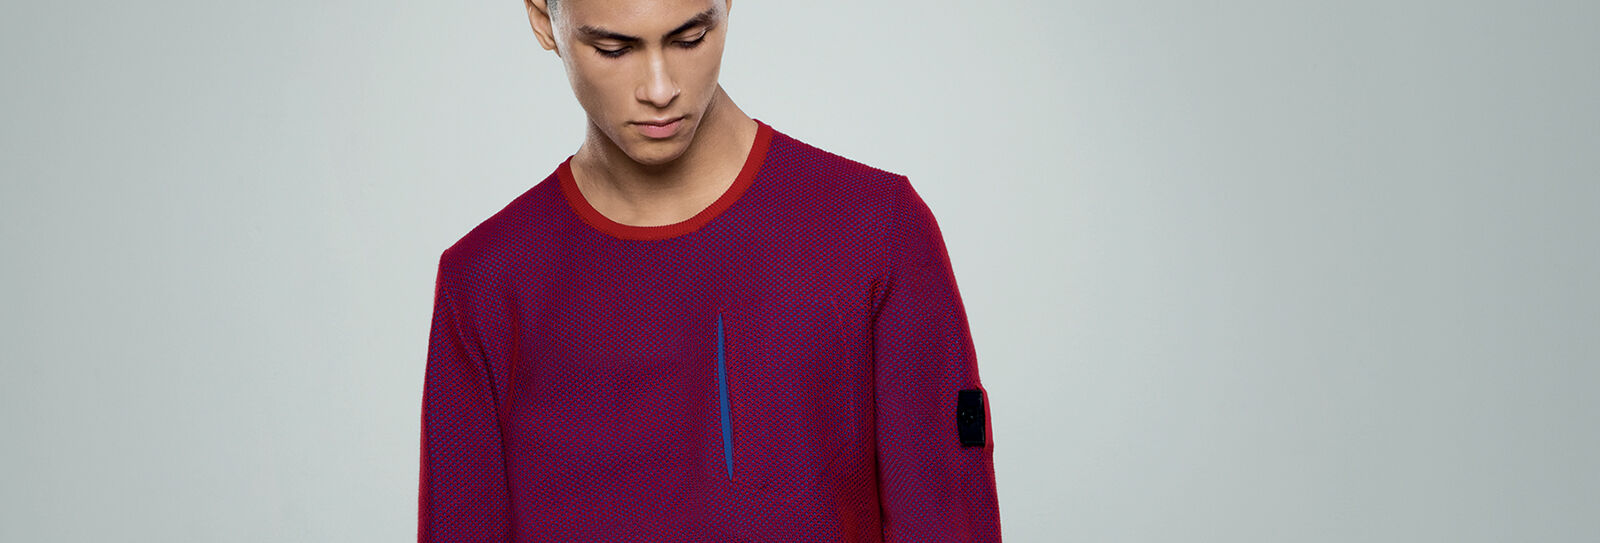 Close up shot of model wearing a red and blue crewneck sweater with one standing pocket on the chest and the Stone Island Shadow Project badge on the upper left sleeve.